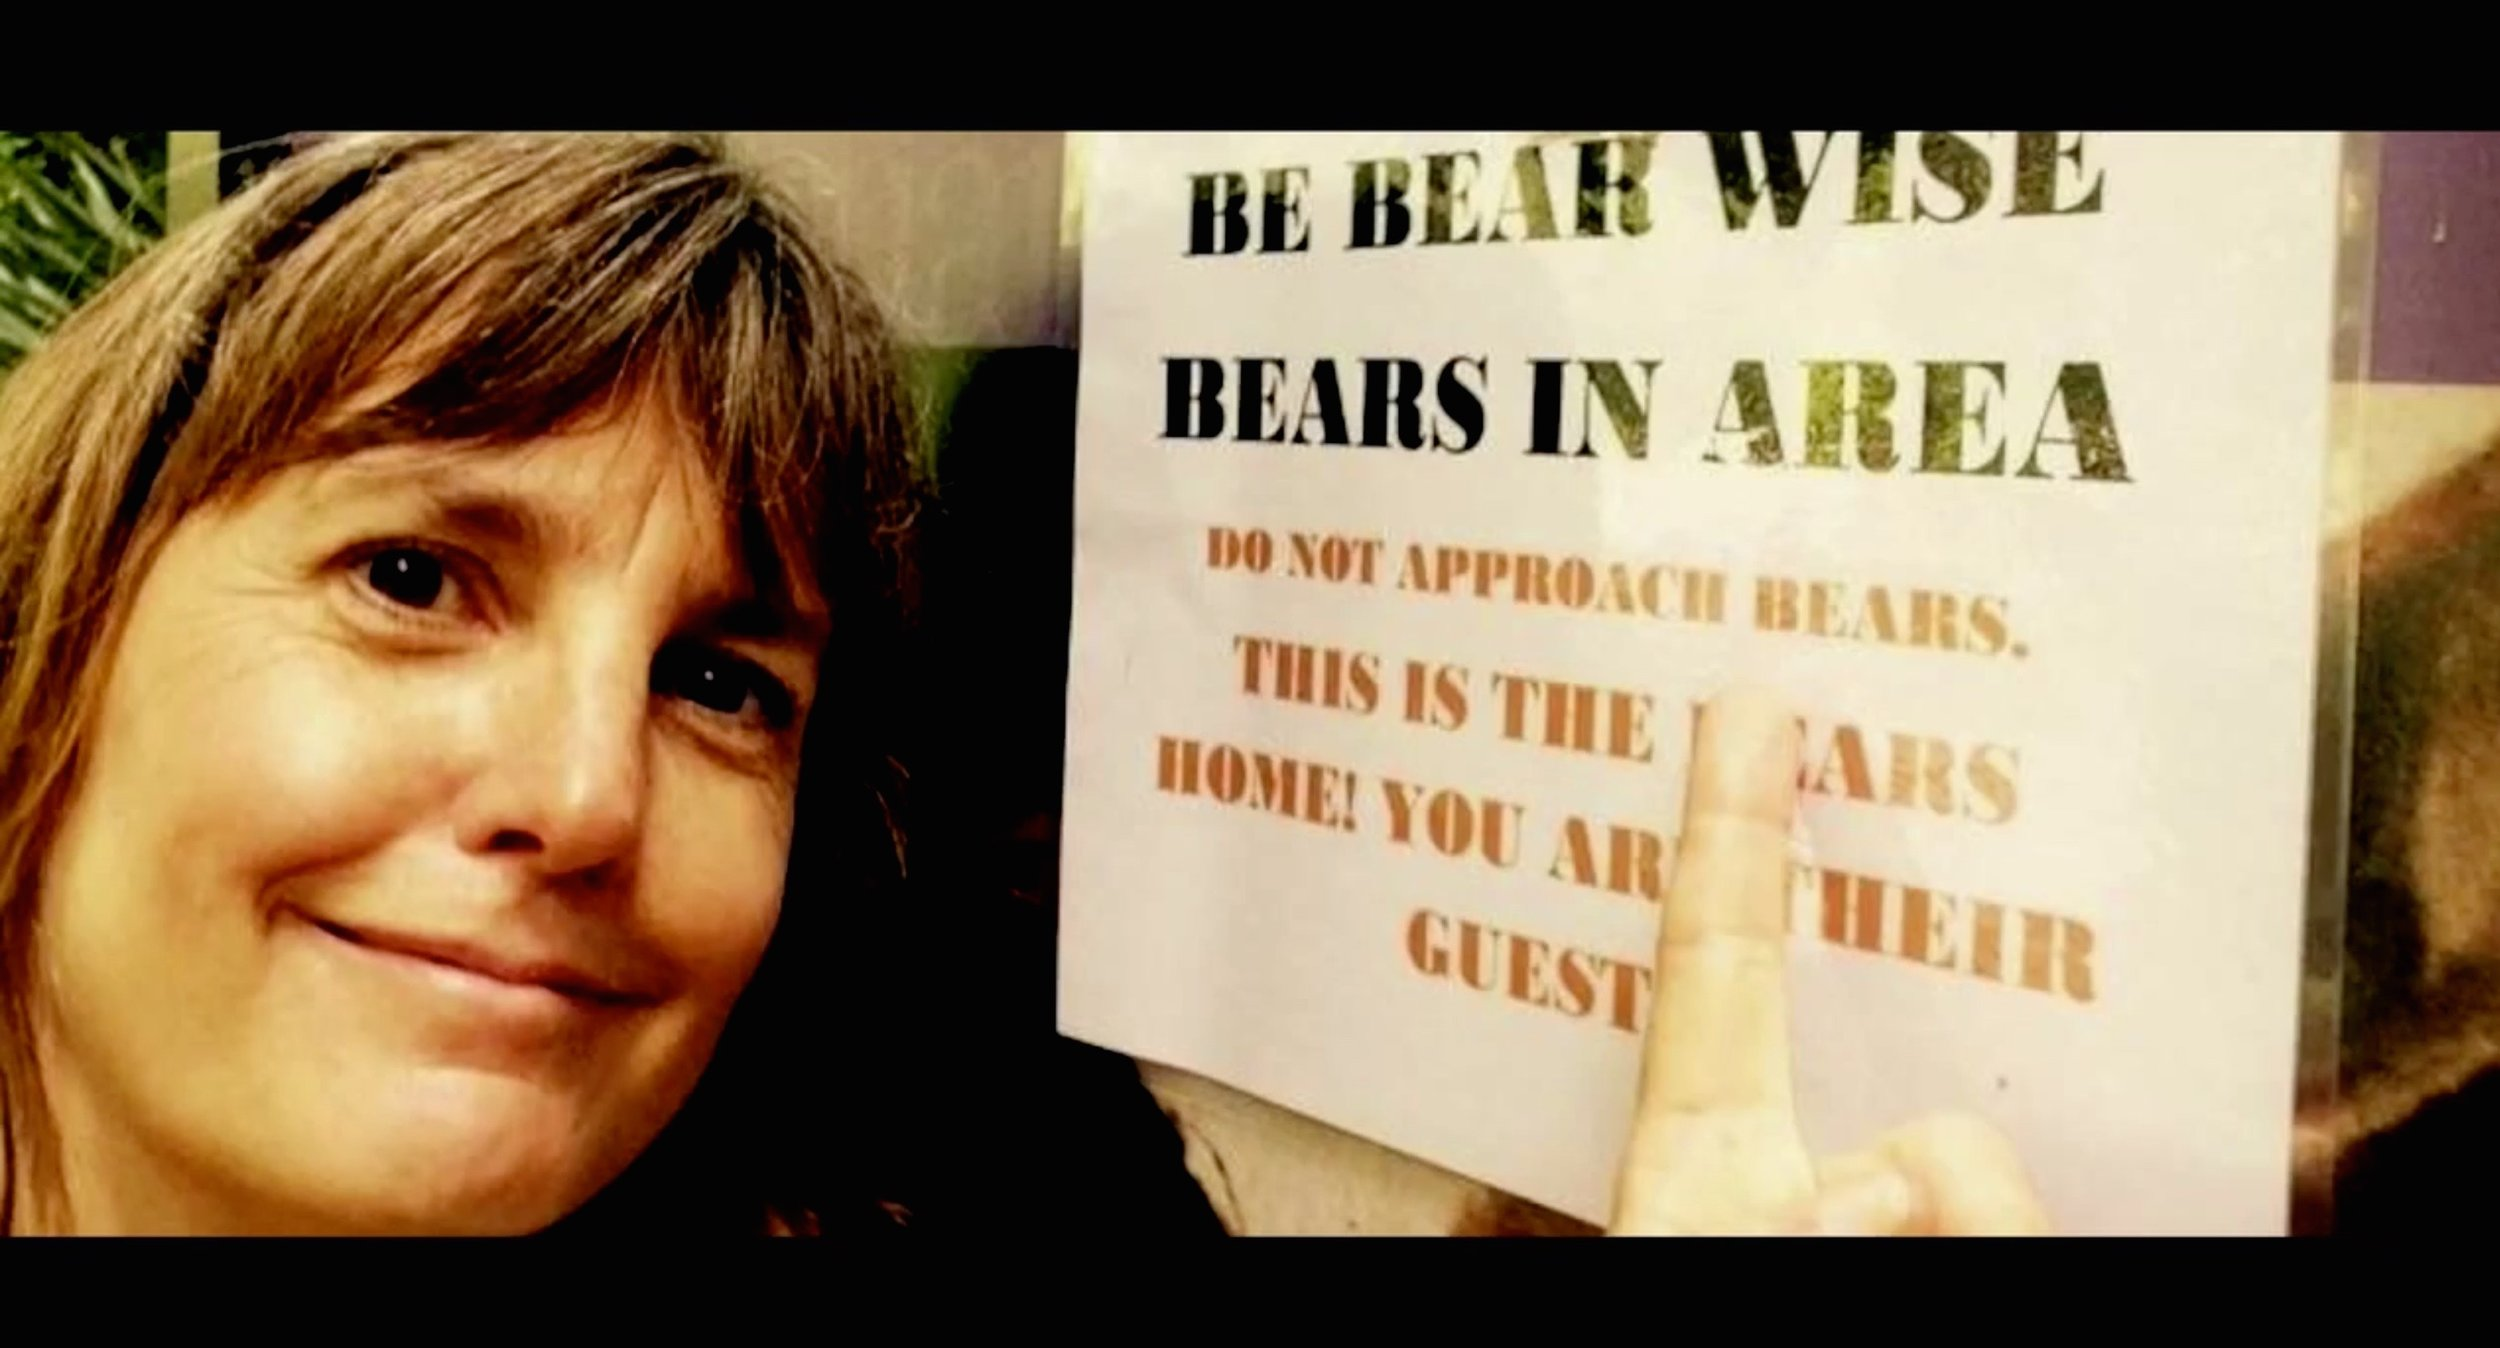 The Perfect Selfie - Selfie with a biologist near a sign about bears being nearby. Several people get too close to them for selfies.